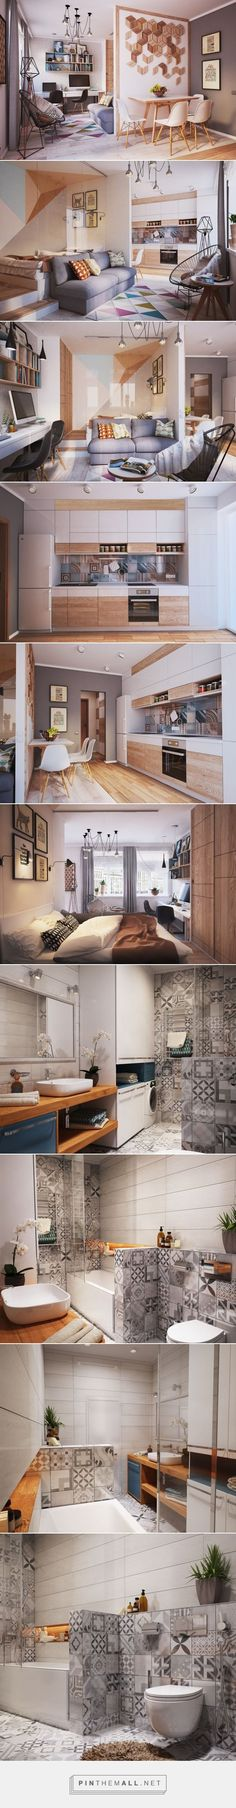 Living Small With Style: 2 Beautiful Small Apartment Plans Under 500 Square Feet (50 Square Meters) - created on 2015-04-14 04:33:52